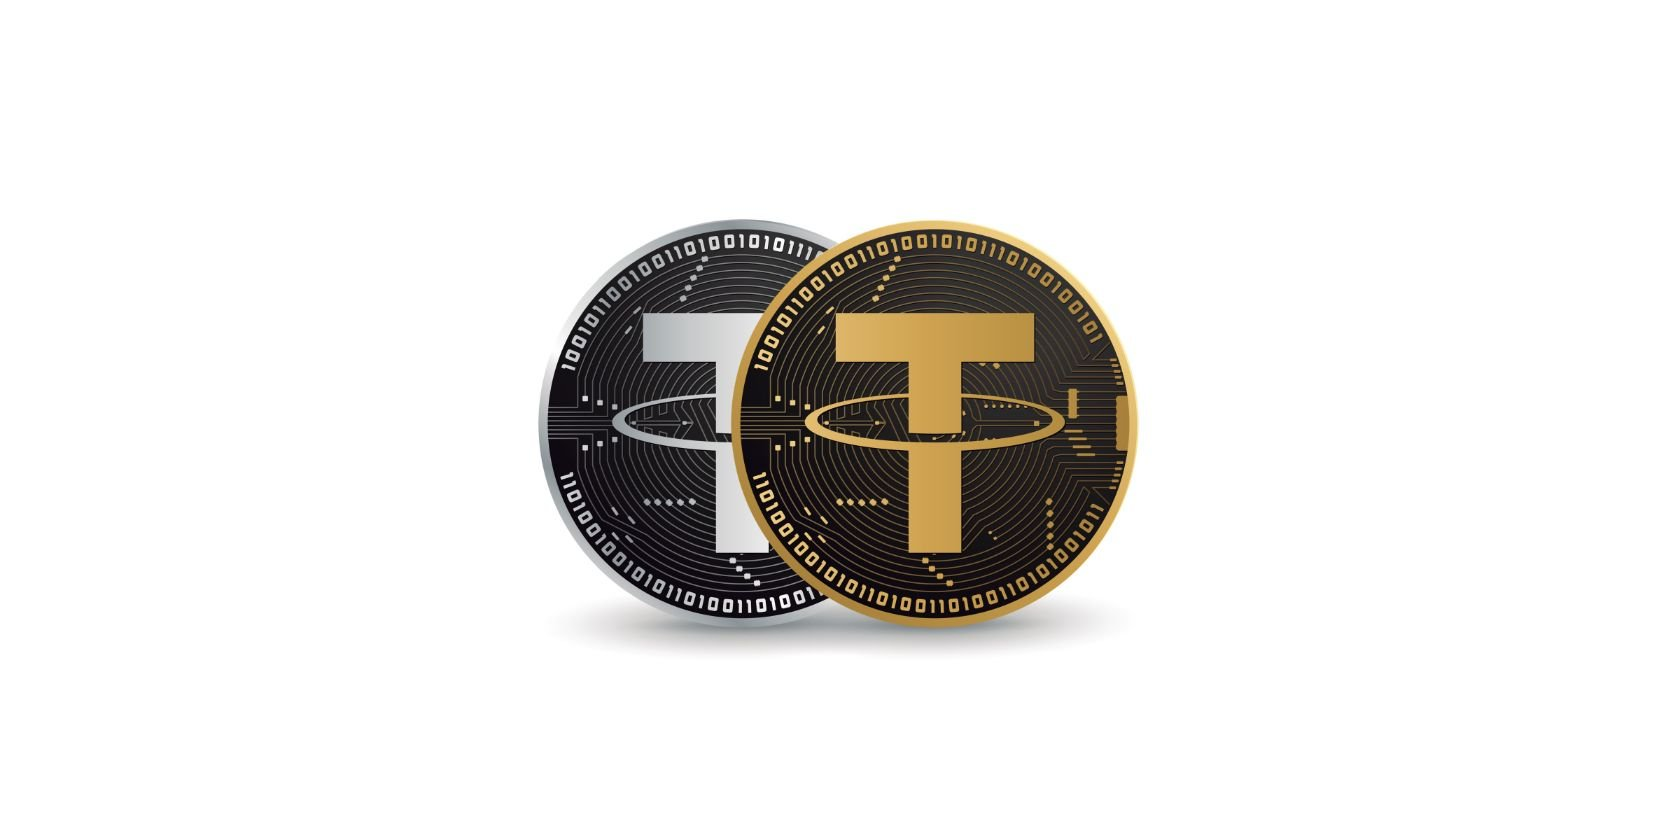 How Does Tether (USDT) Work and Why Is It So Controversial?